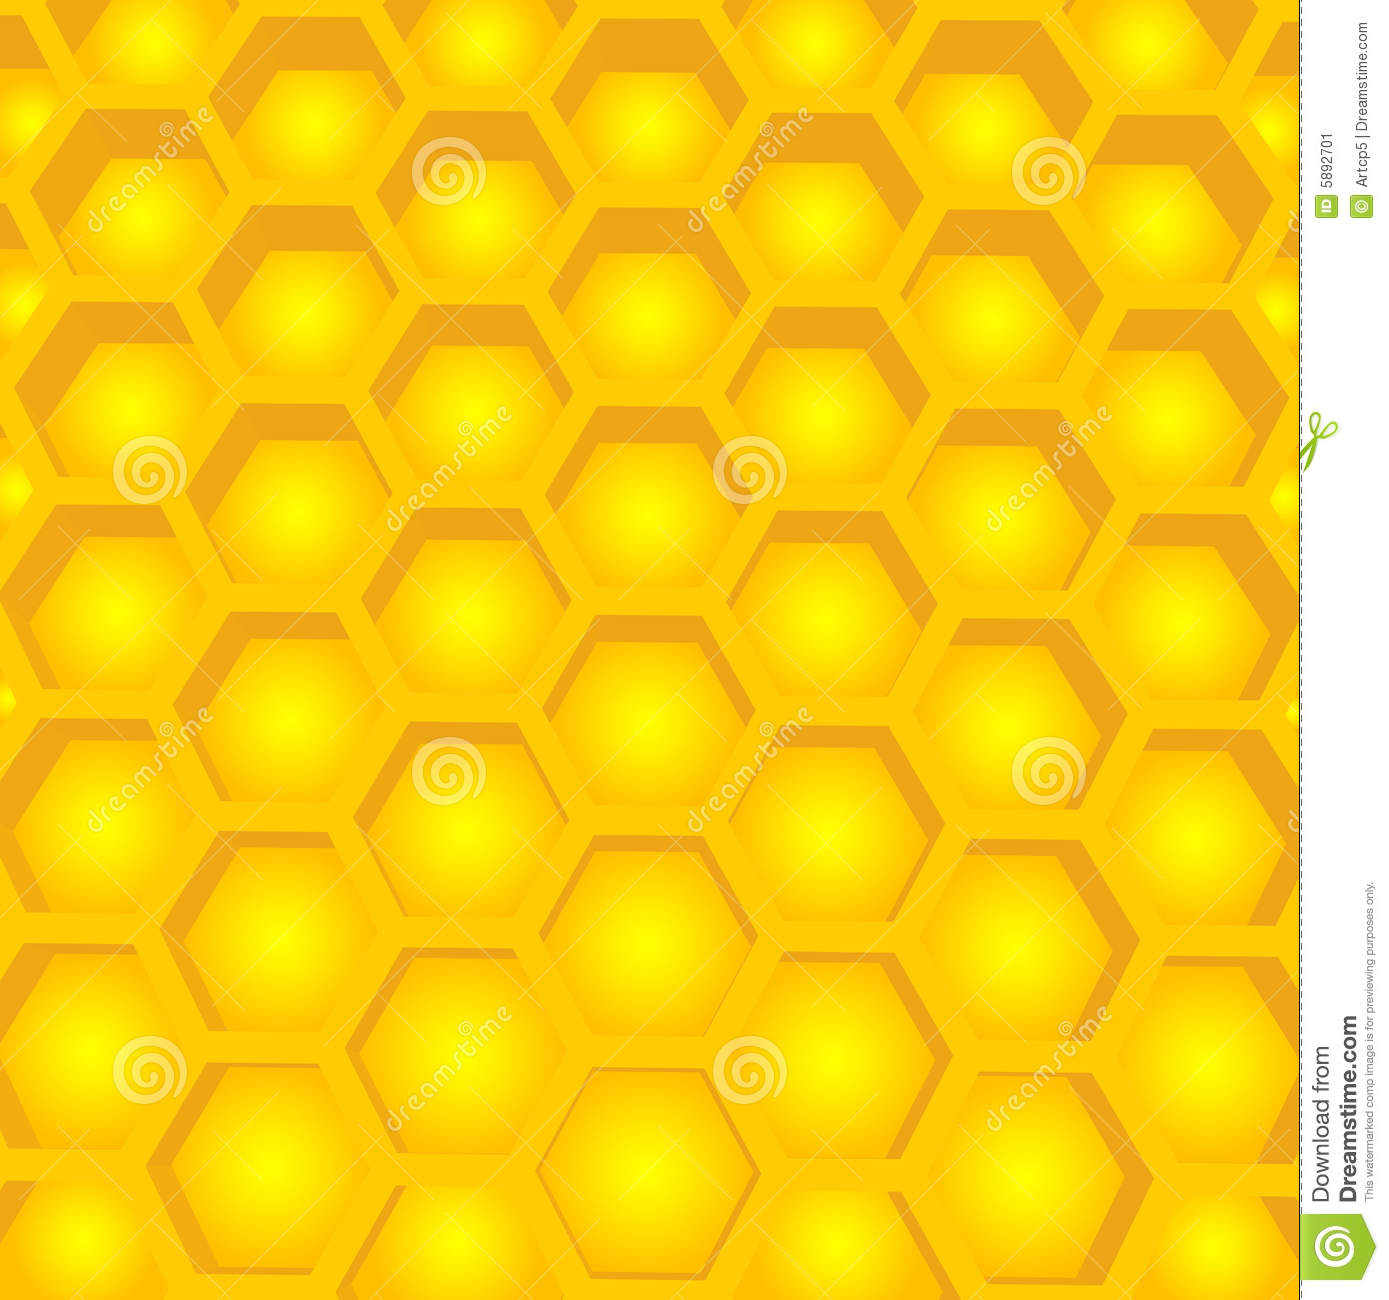 Honey Cell Structure Stock Image